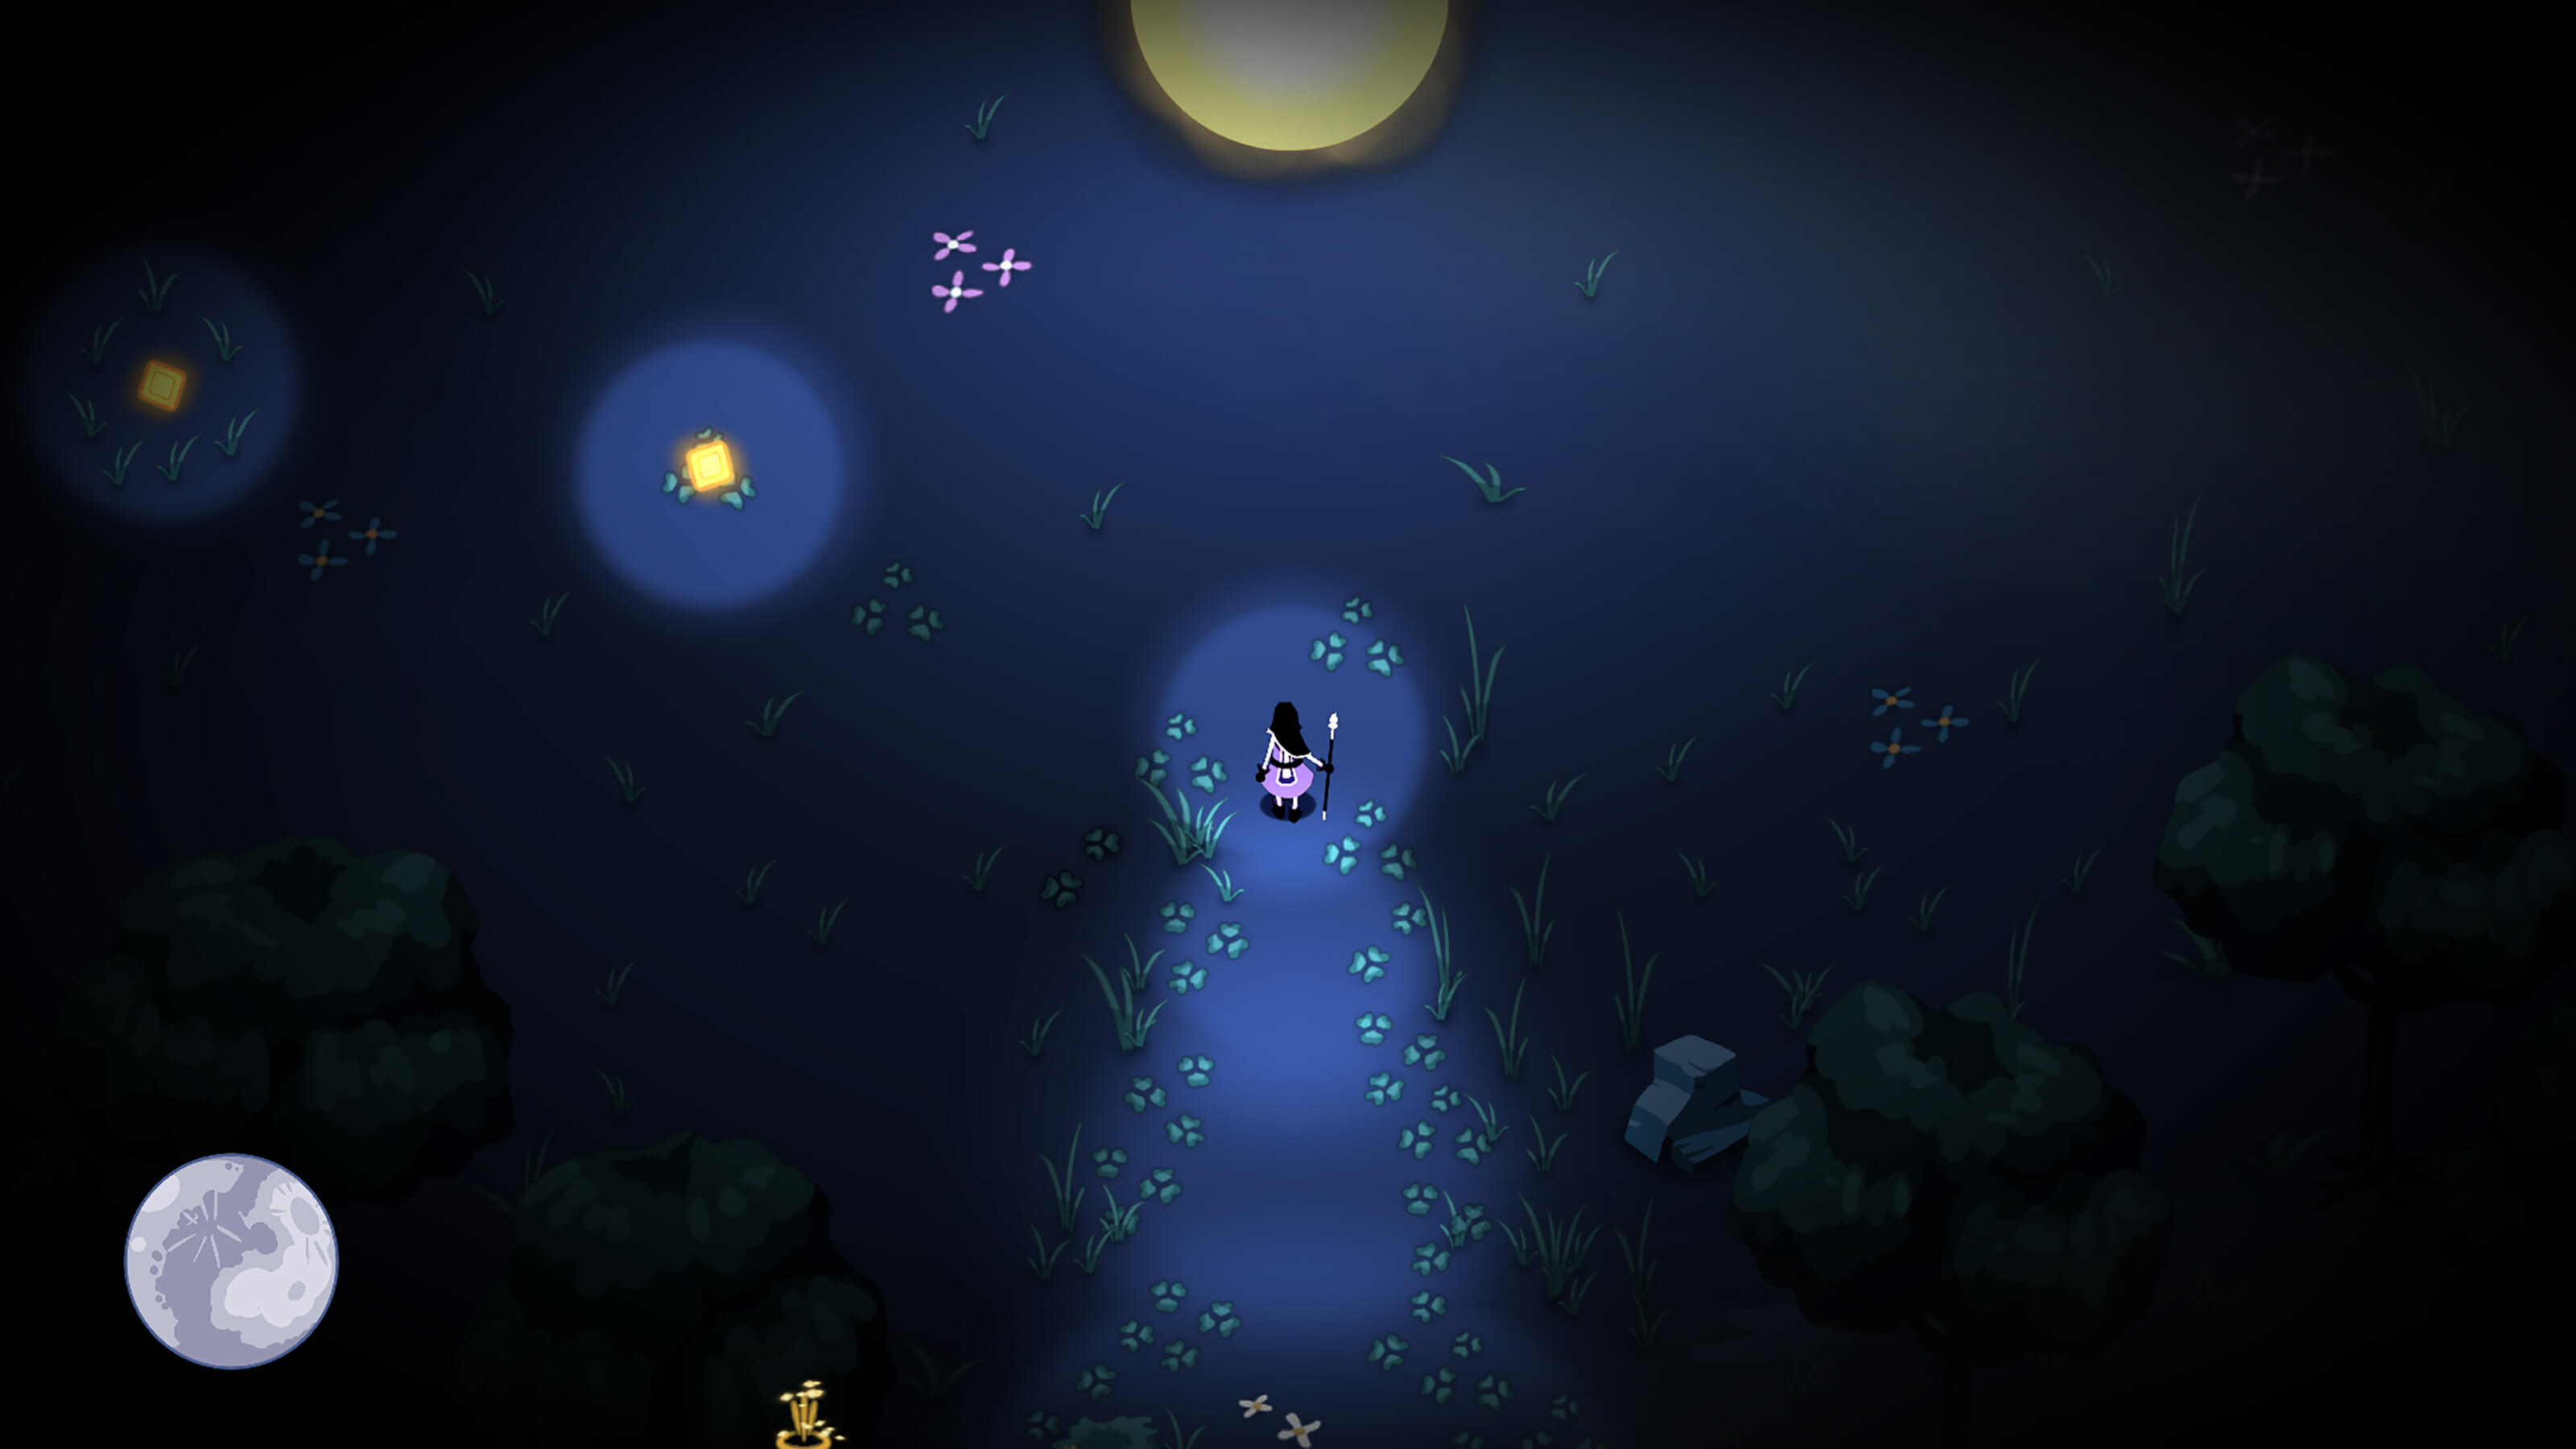 A mage stands in a small sunlit patch in a dark forest.